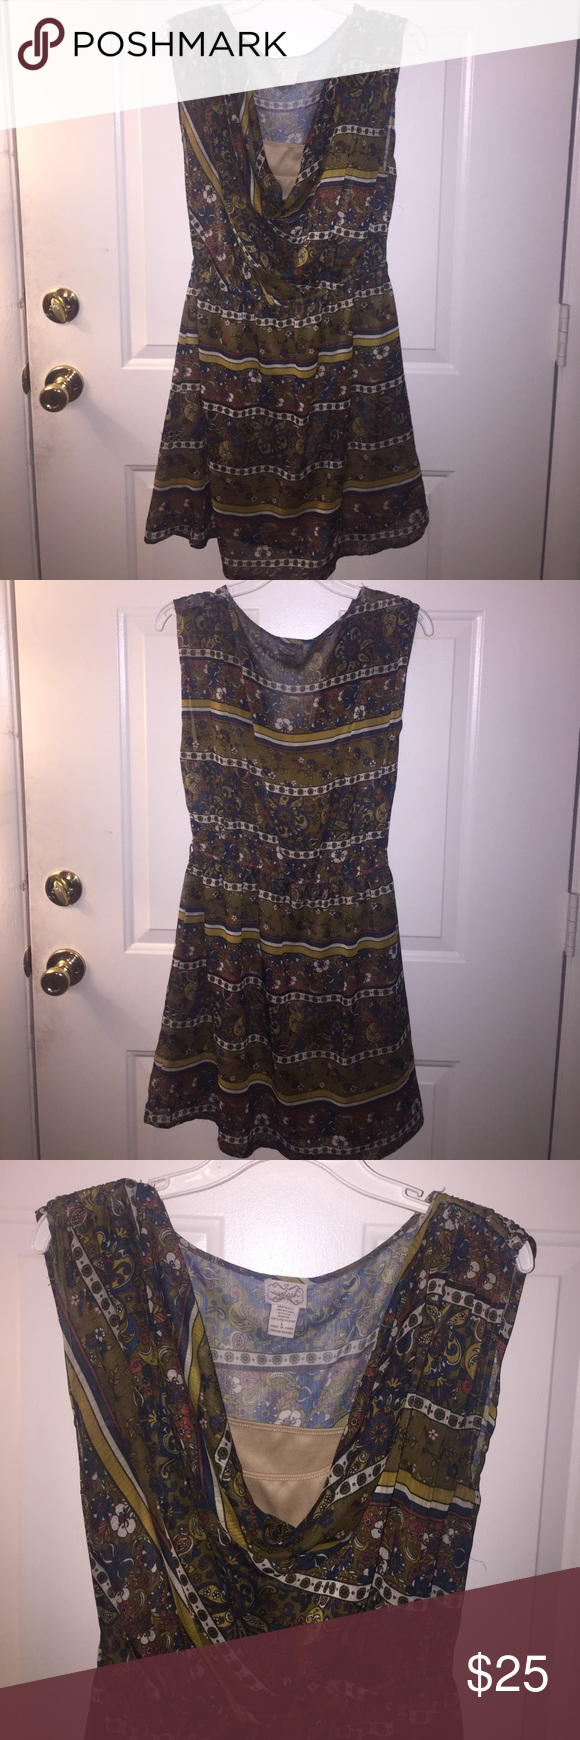 Vintage Patterned Juniper Chiffon Belted Dress EUC• Minor wear•Draped neckline• Elegant design• Beige lining• Sheer• Gathered waist•Small tear on side• Ruching on shoulders• Can be belted• Pair w/ flats for a simple chic look•                                                            🛍Bundle for 10% discount 🛍 🚭Smoke free• Pet free 🐱🐶 🔹Top Rated Seller• Quick Shipping🔹 🙅🏽🚫NO TRADES 🚫🙅🏽 Eyelash Couture Dresses Mini